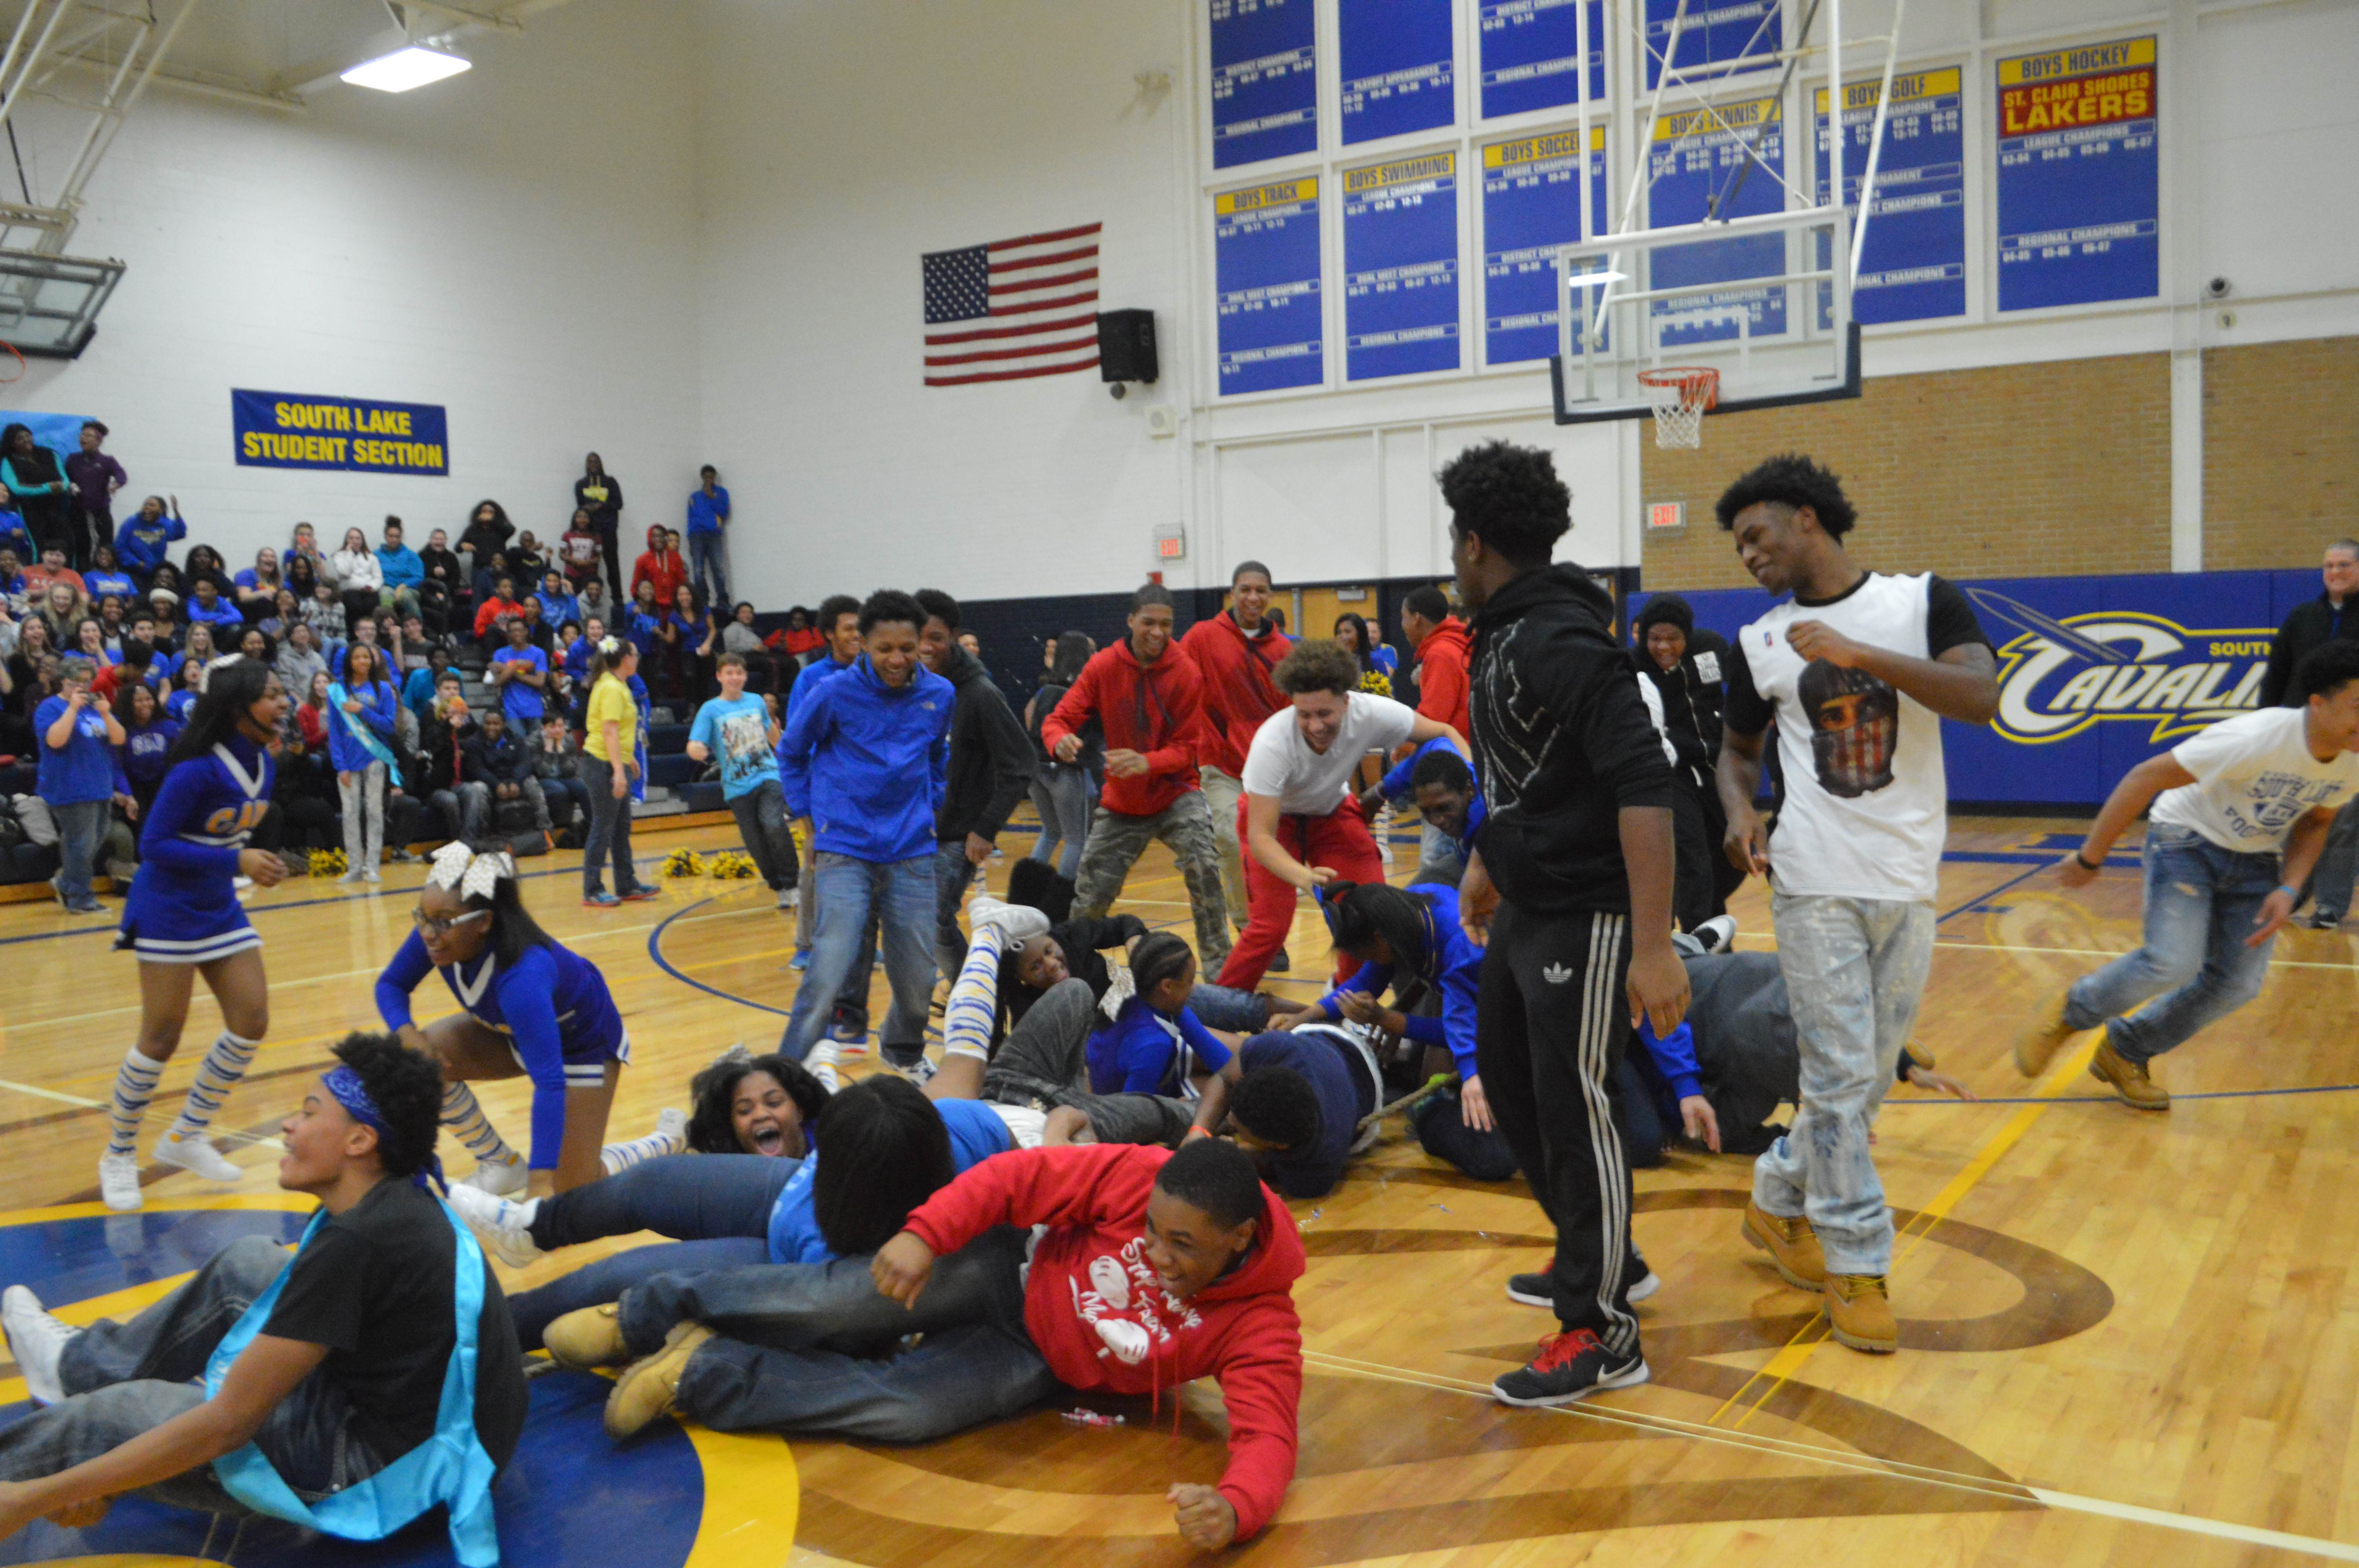 As the freshman team begins to lose tug of war, a swarm of freshman come down to help out their classmates.